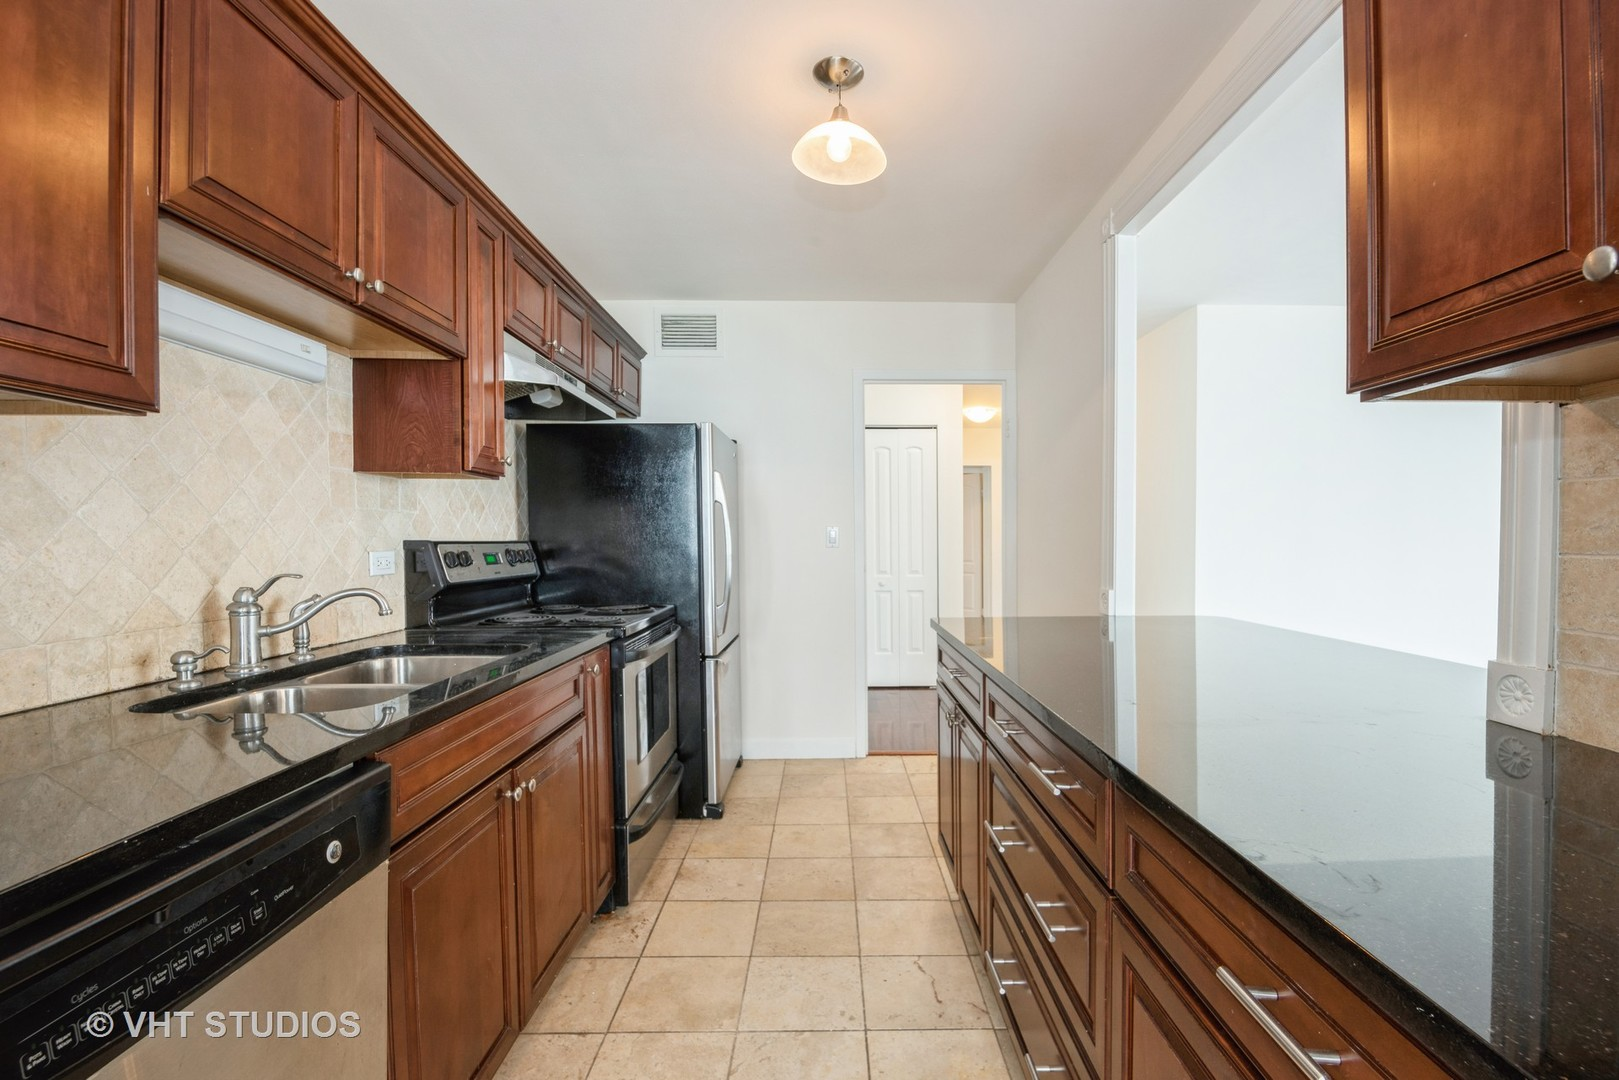 6157 Sheridan Unit Unit 23f ,Chicago, Illinois 60660